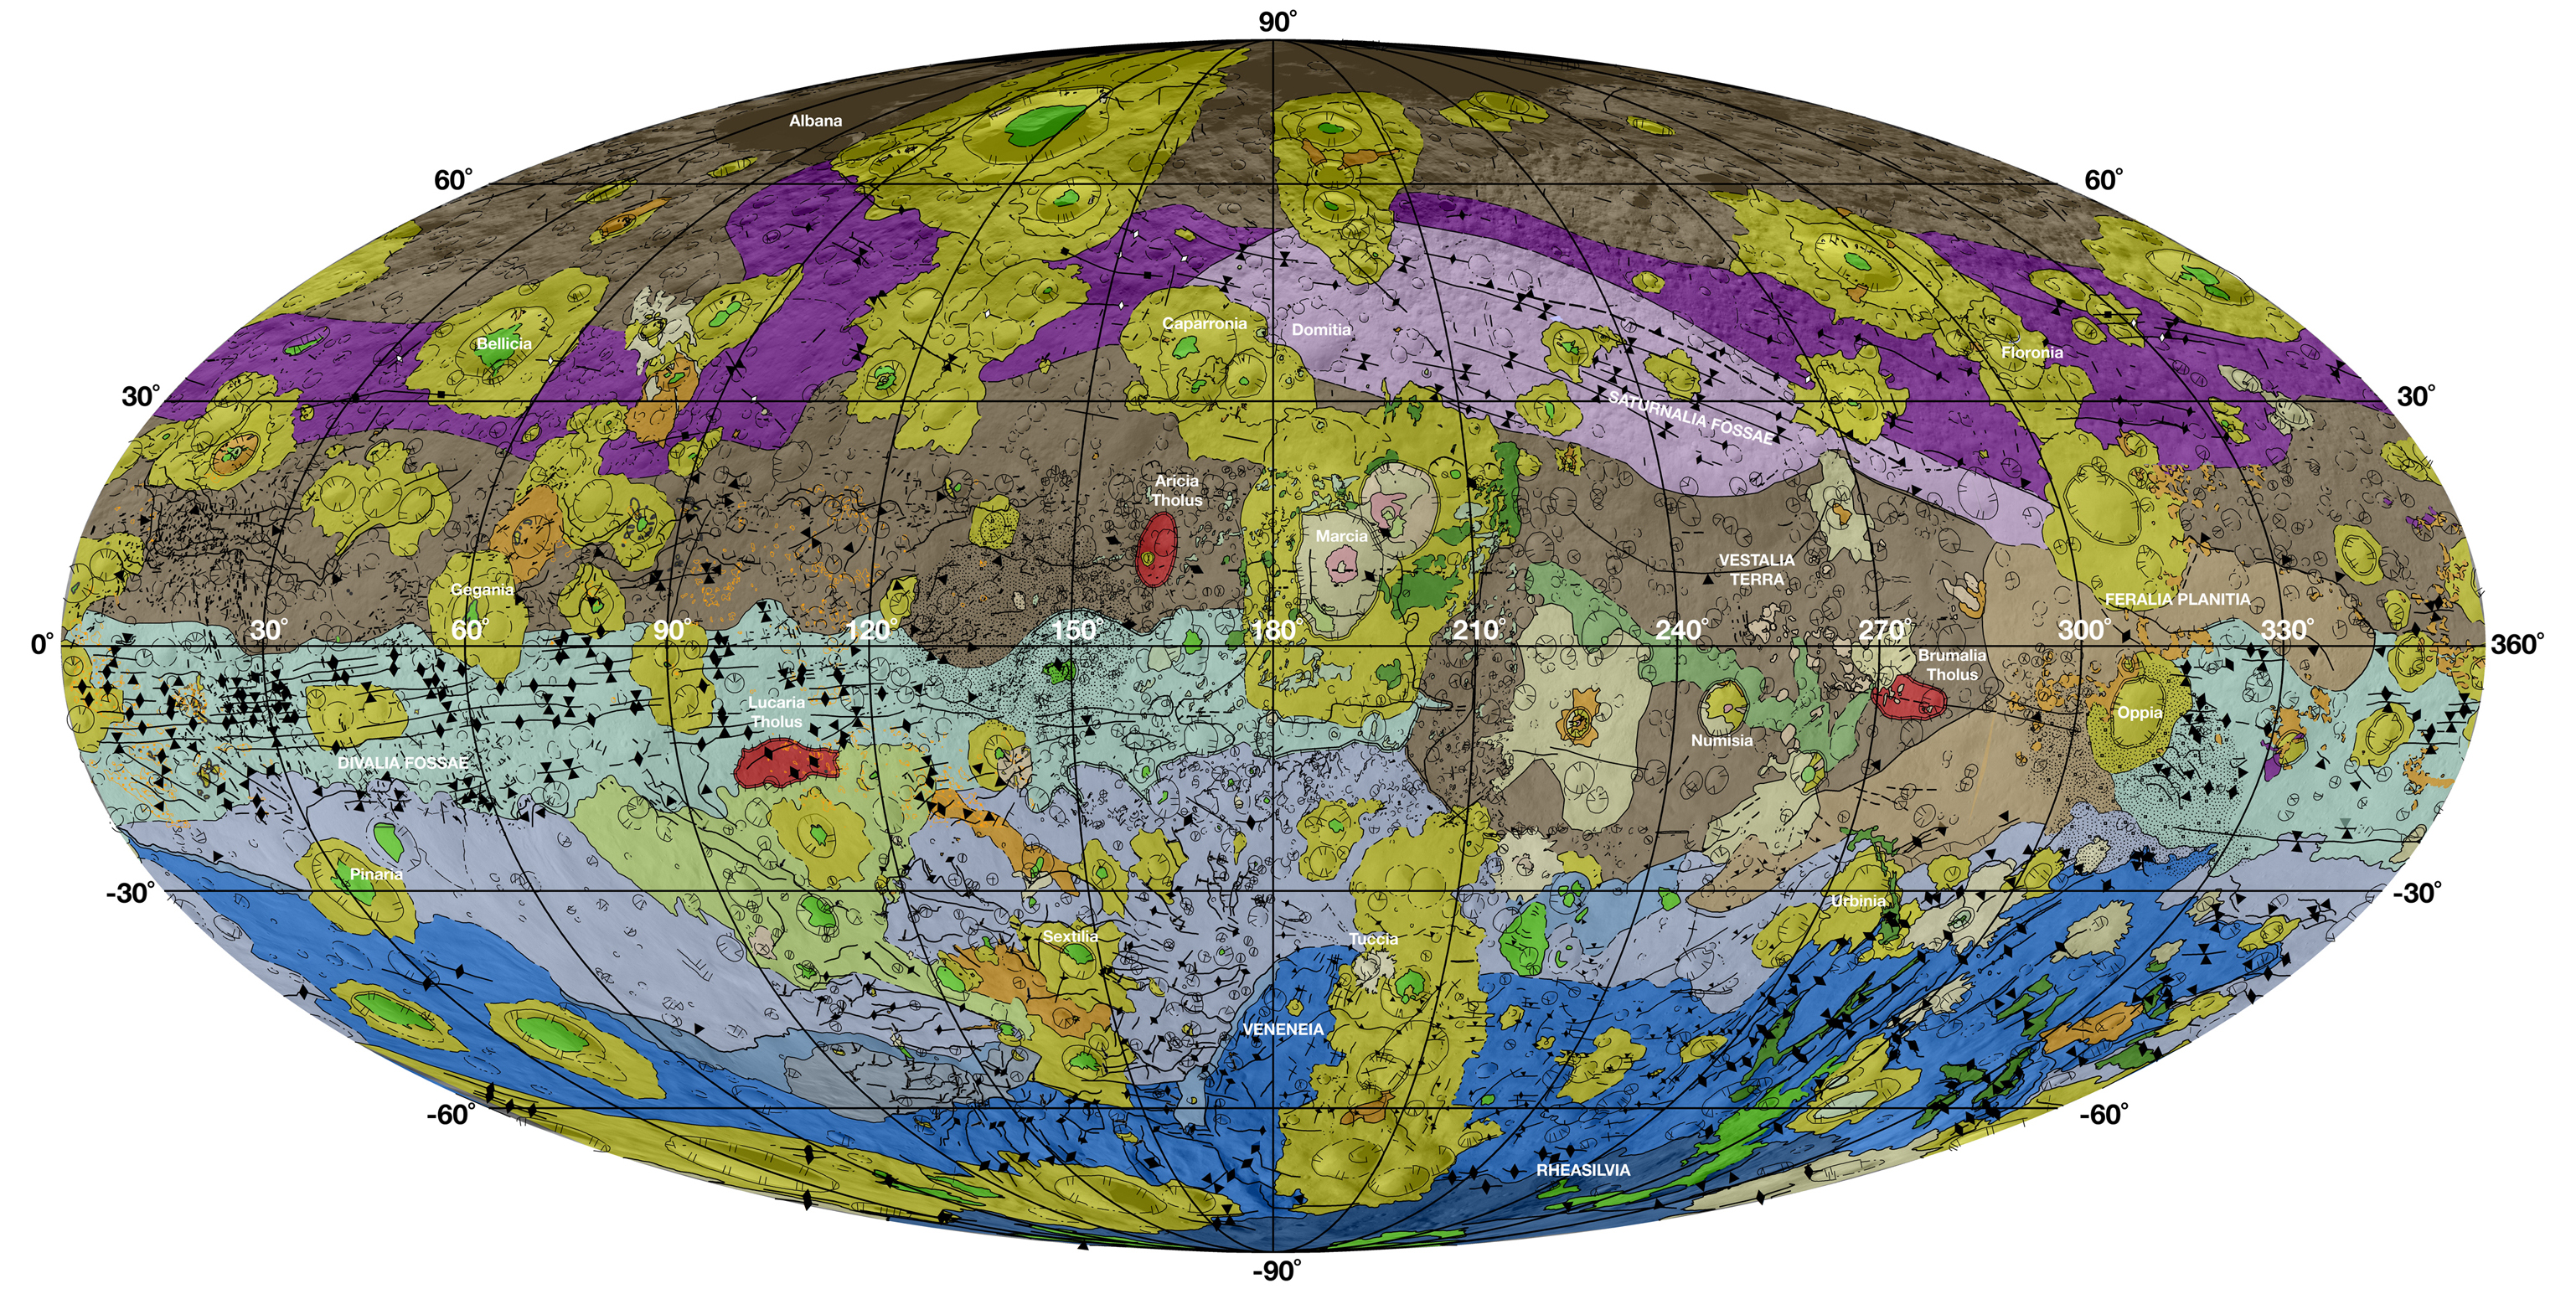 Vesta's geological map